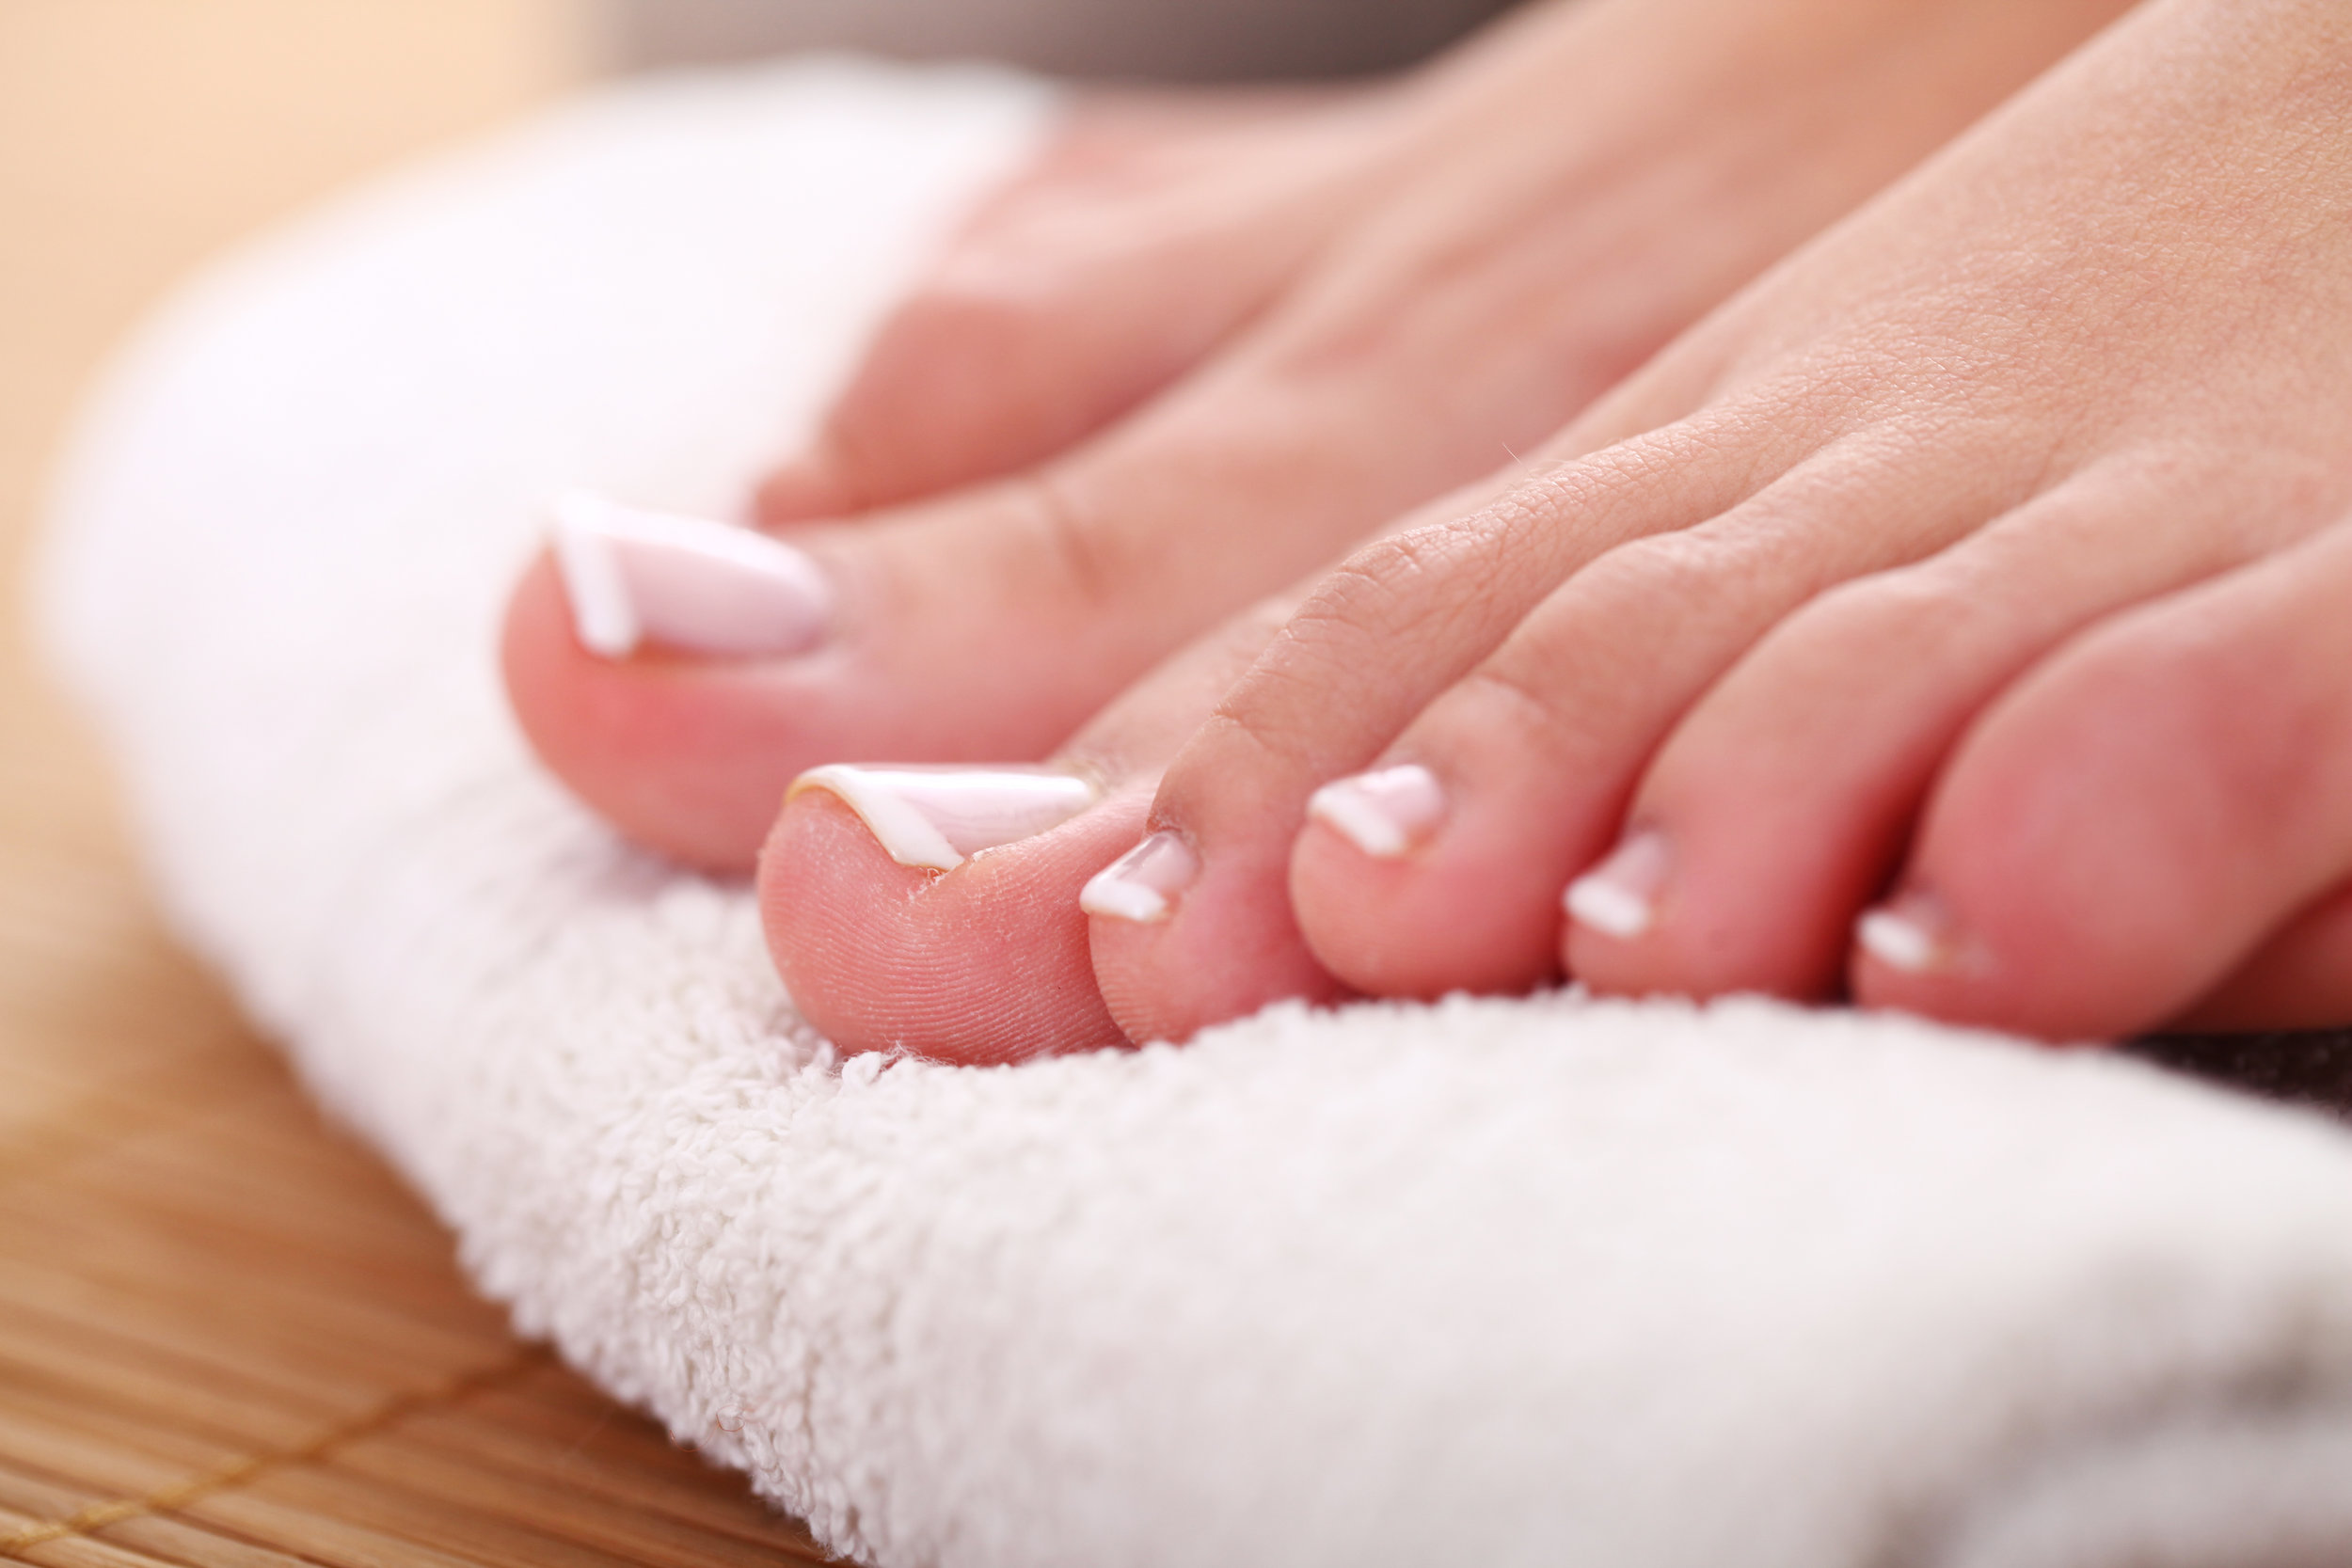 Feel_Good_Therapy_Pedicures_Manicures.jpg